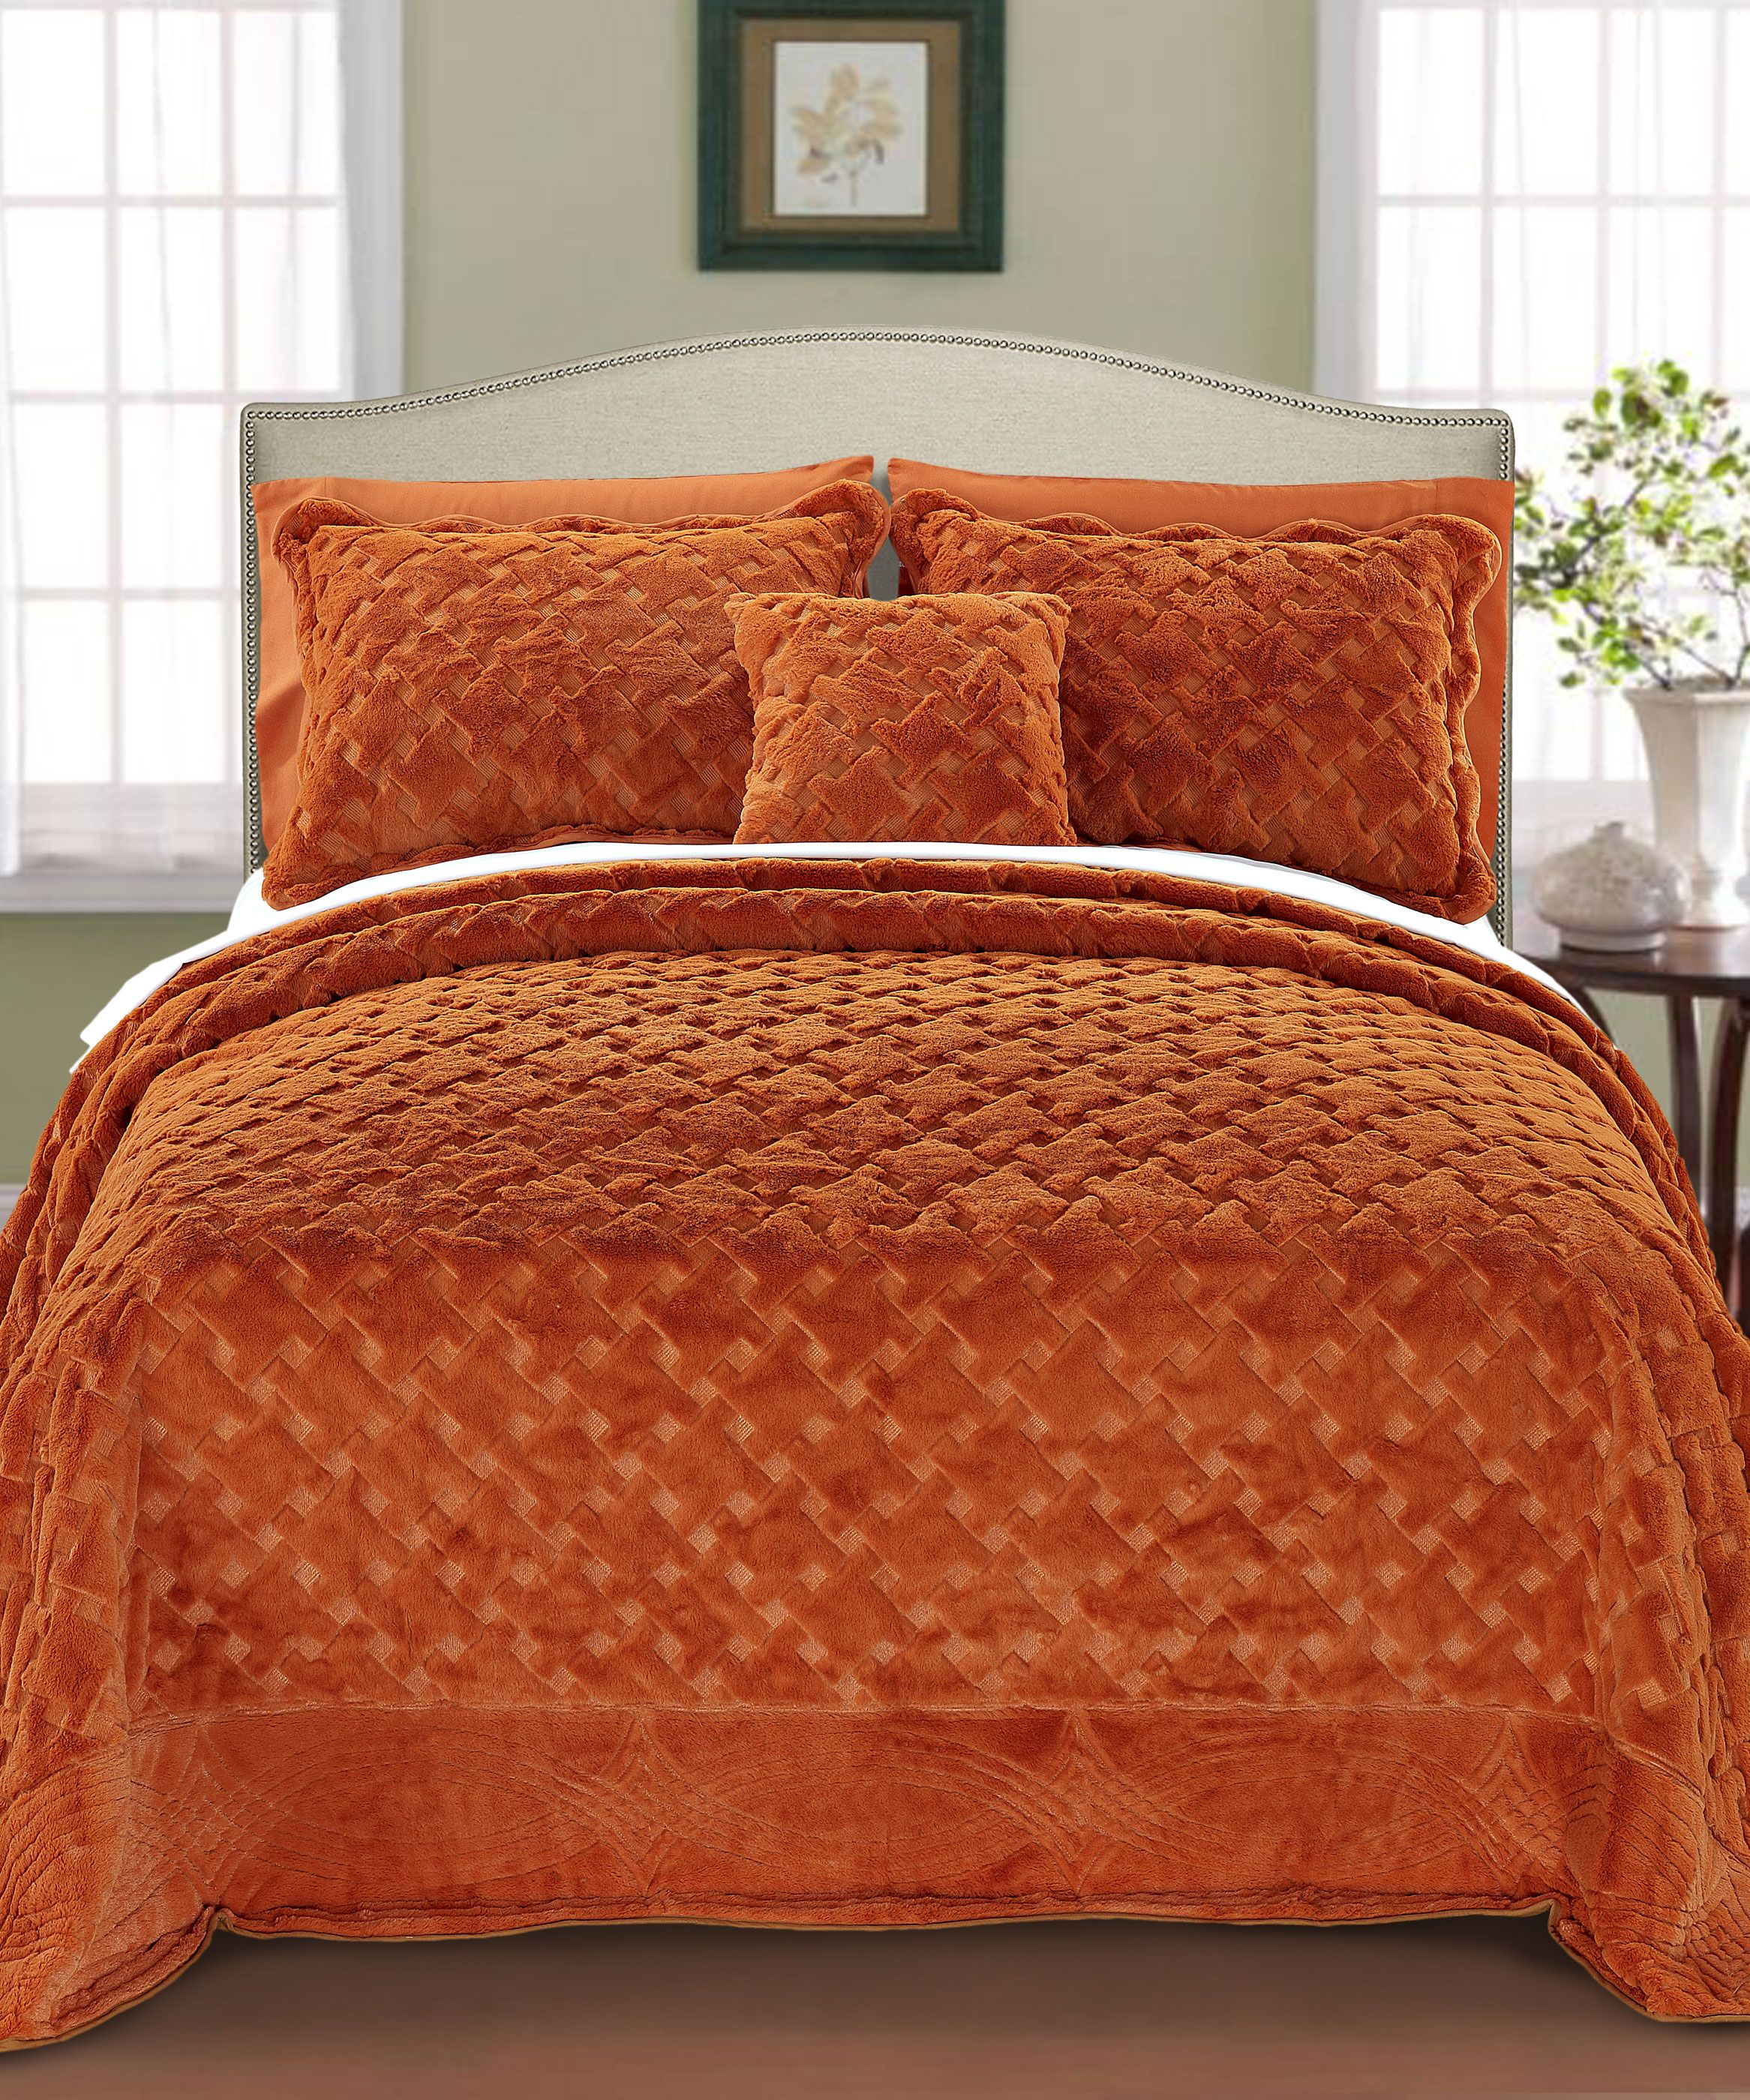 queen boho comforter walmart set com gardens ip orange bedding kids and better homes patchwork